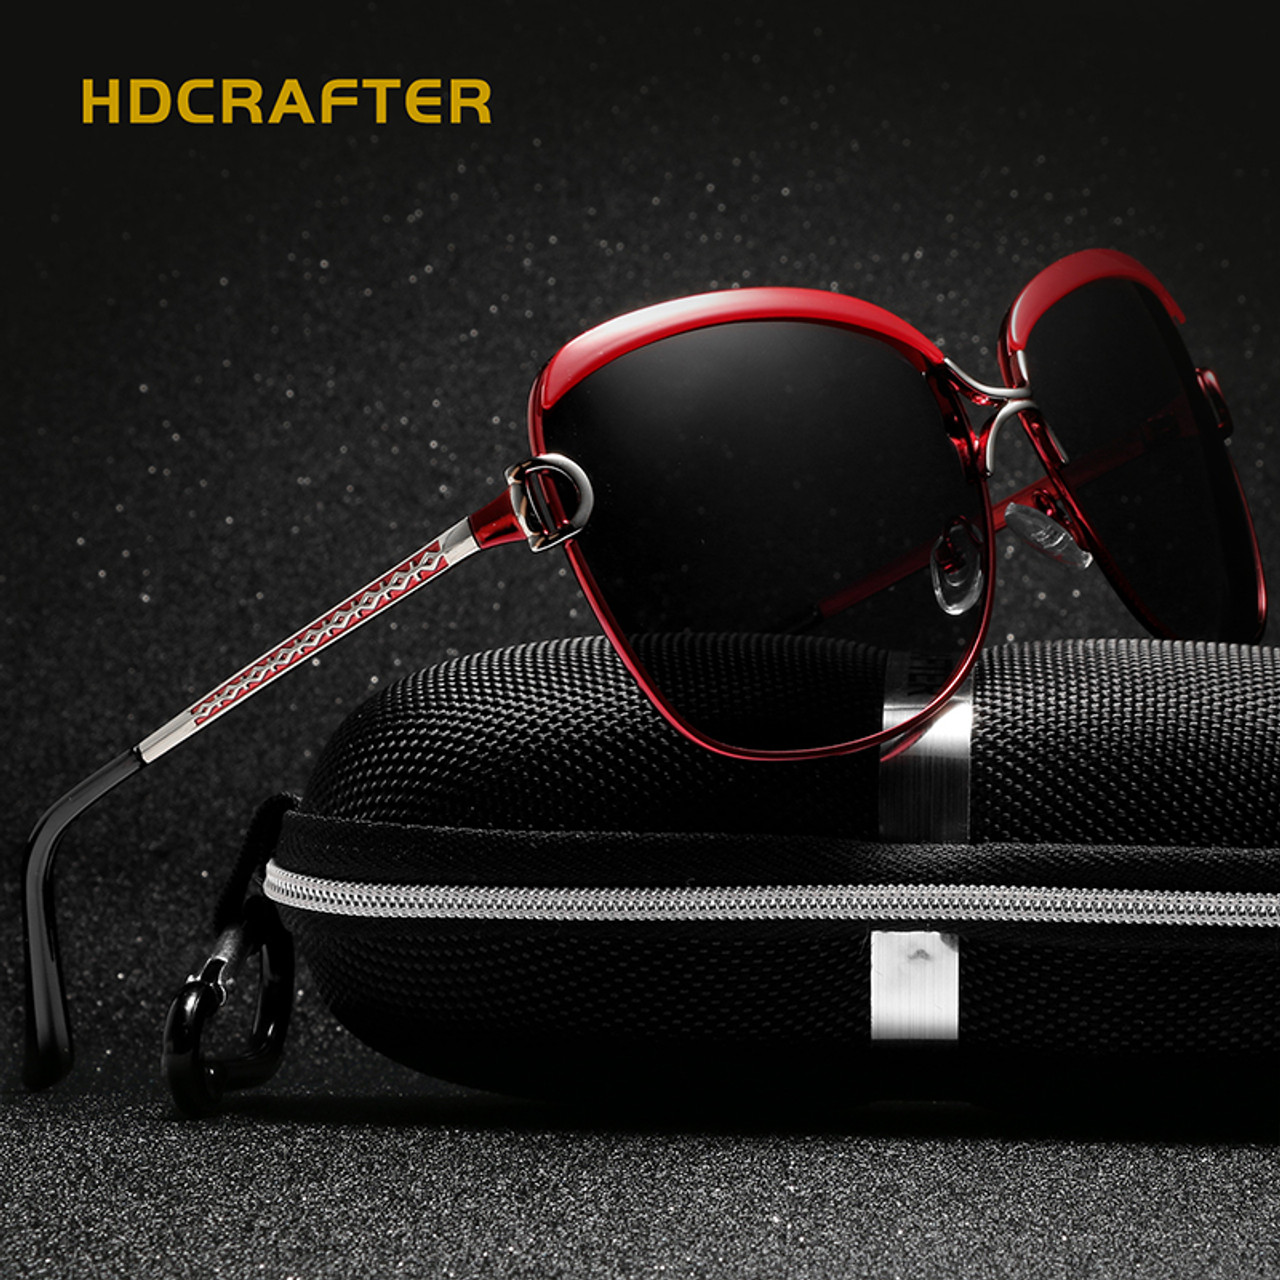 68a27cb9490 HDCRAFTER Luxury Sunglasses Women 2017 Brand Designer Large Sun Glasses  Female Retro Polaroid Eyewear Women UV400 oculos de sol - OnshopDeals.Com